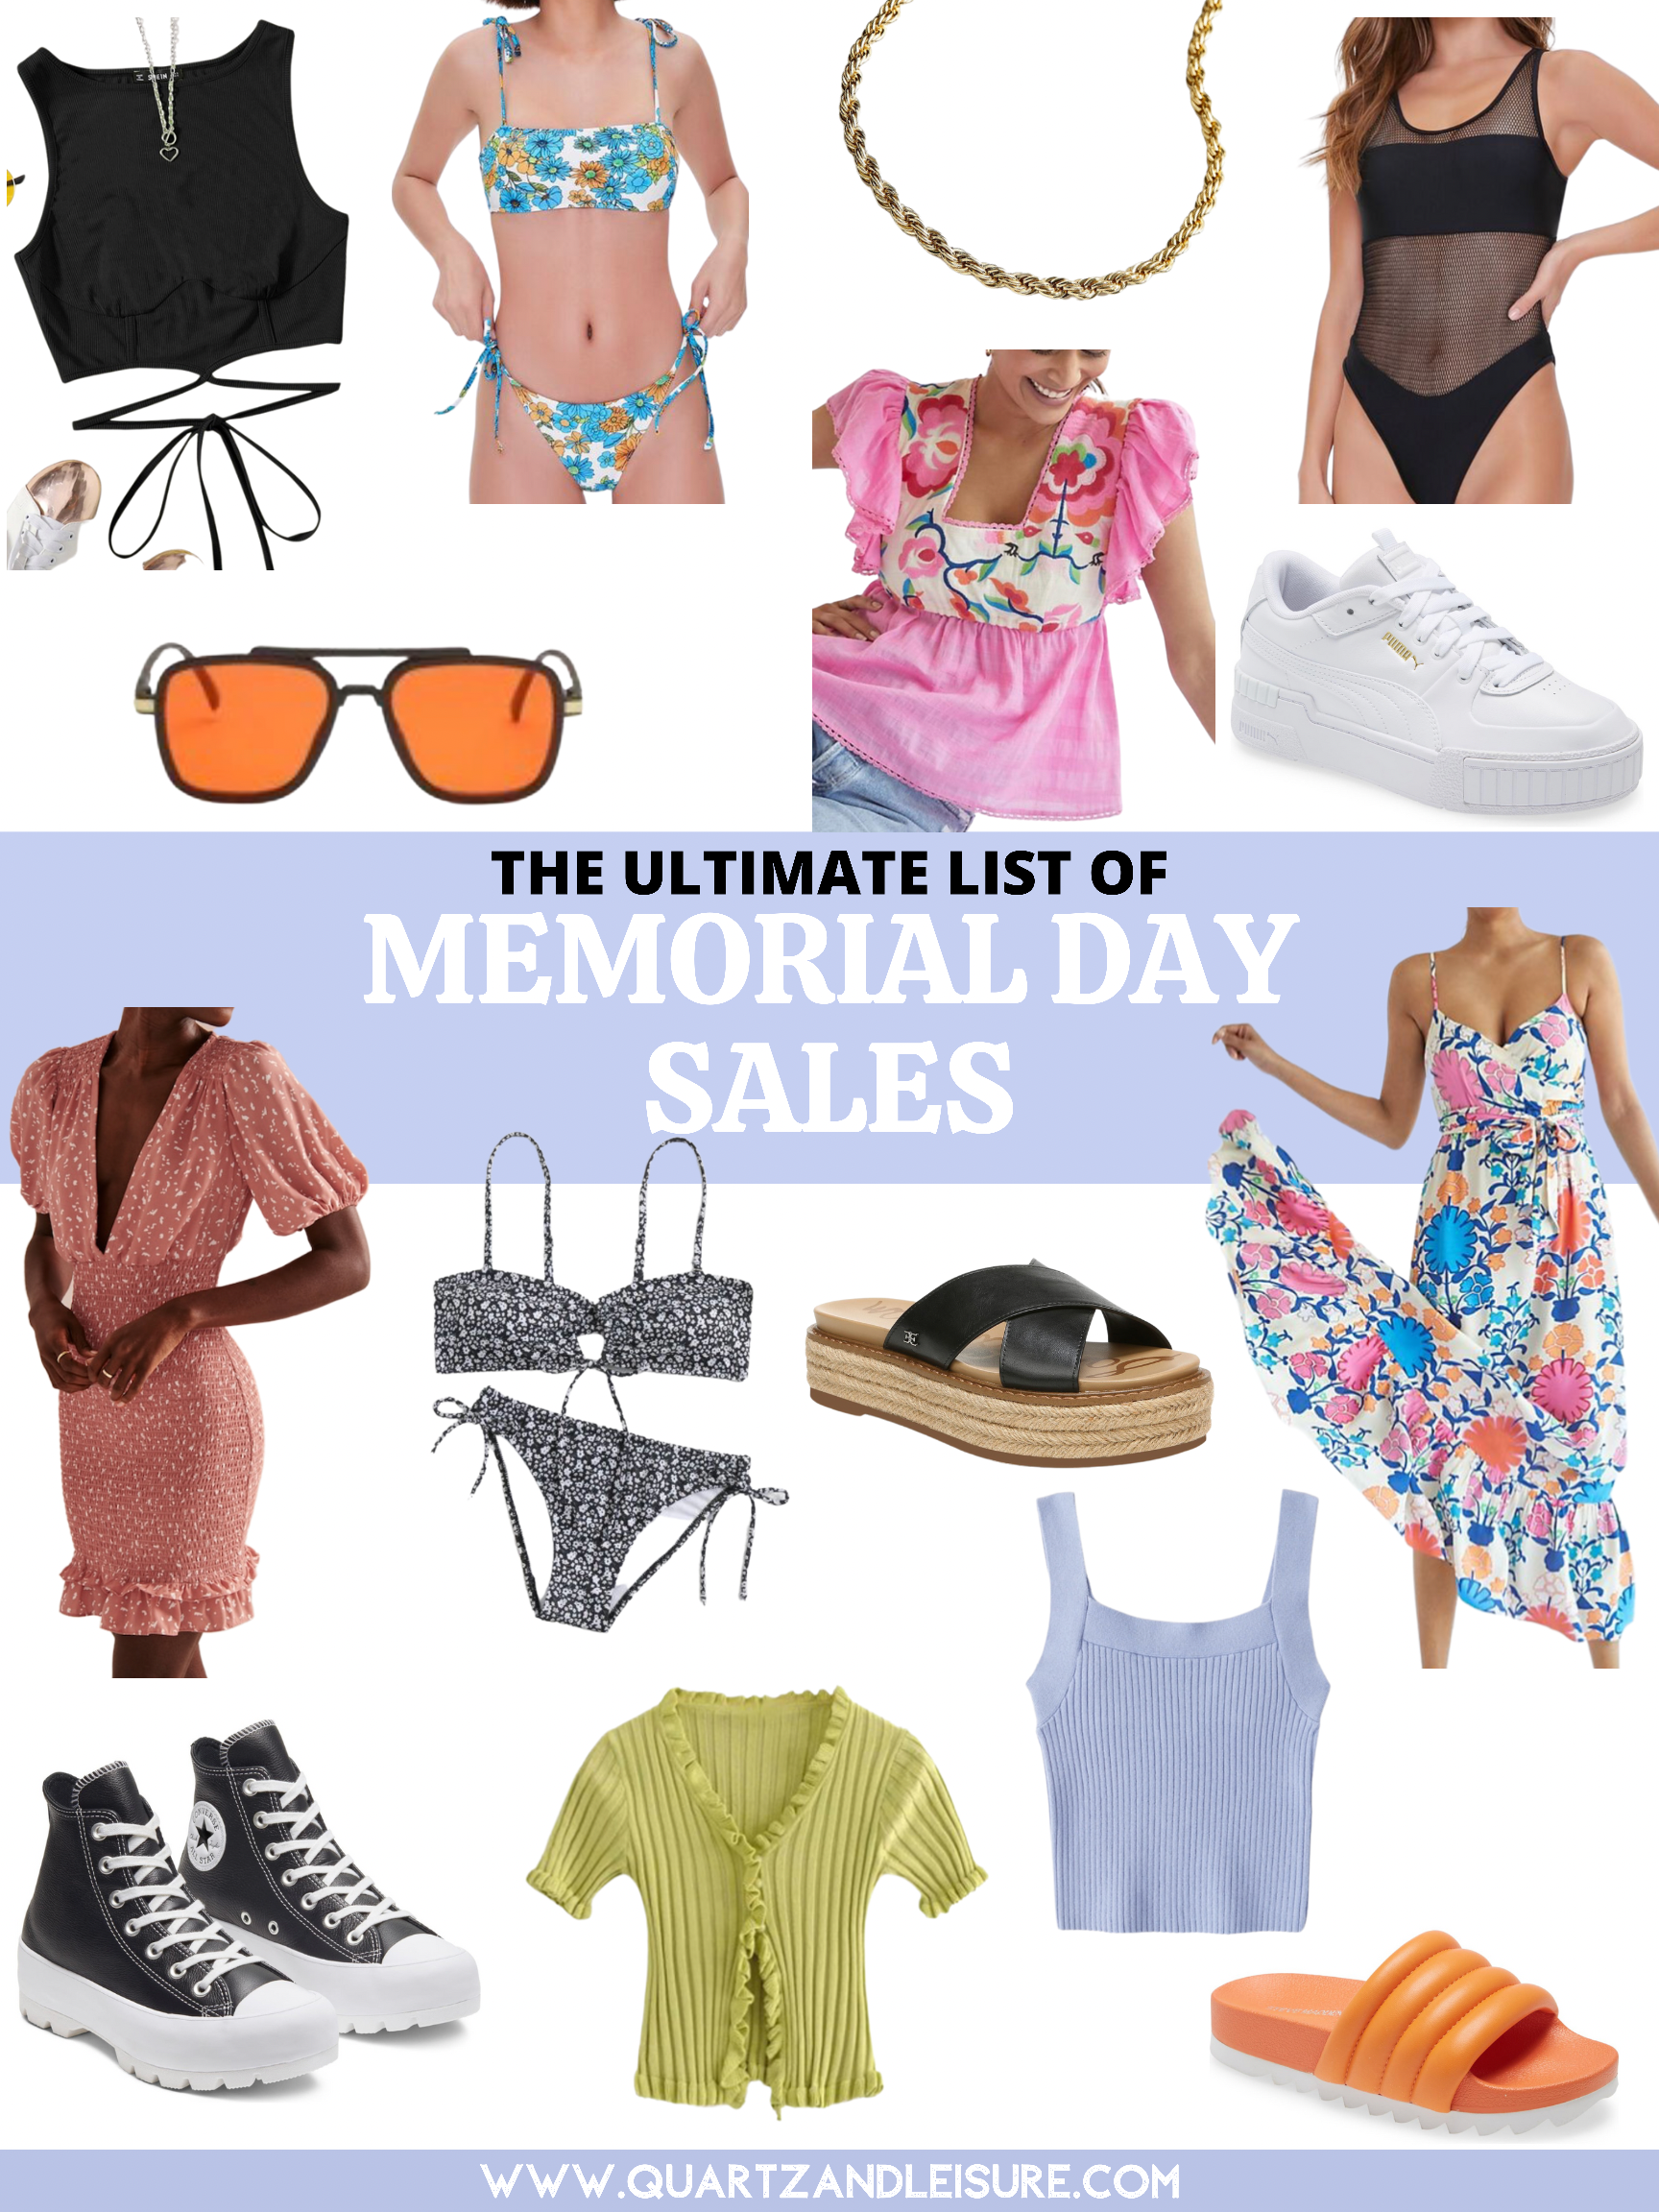 The Ultimate List of Memorial Day Sales 2021